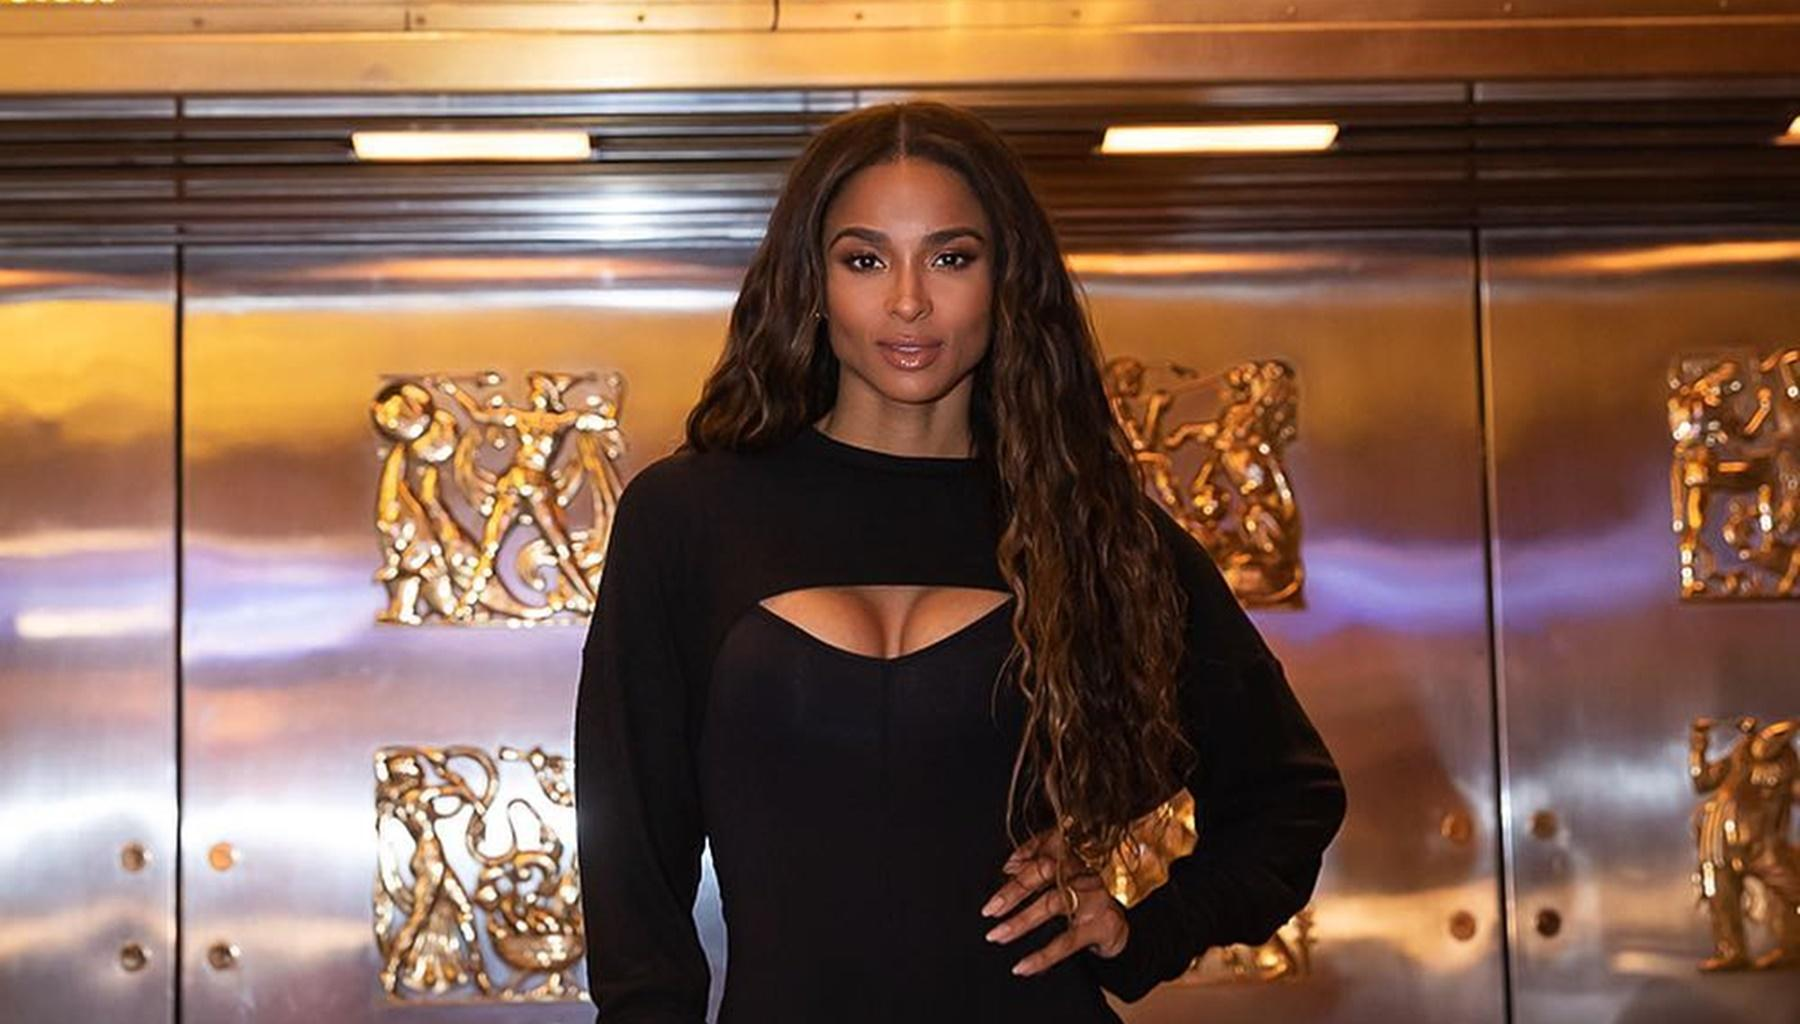 Ciara Breaks The Internet By Showing Curves In Video That Makes Fans Dream About Summer -- Russell Wilson Can Be Proud And Future Just Got An Extra Reason To Be Testy